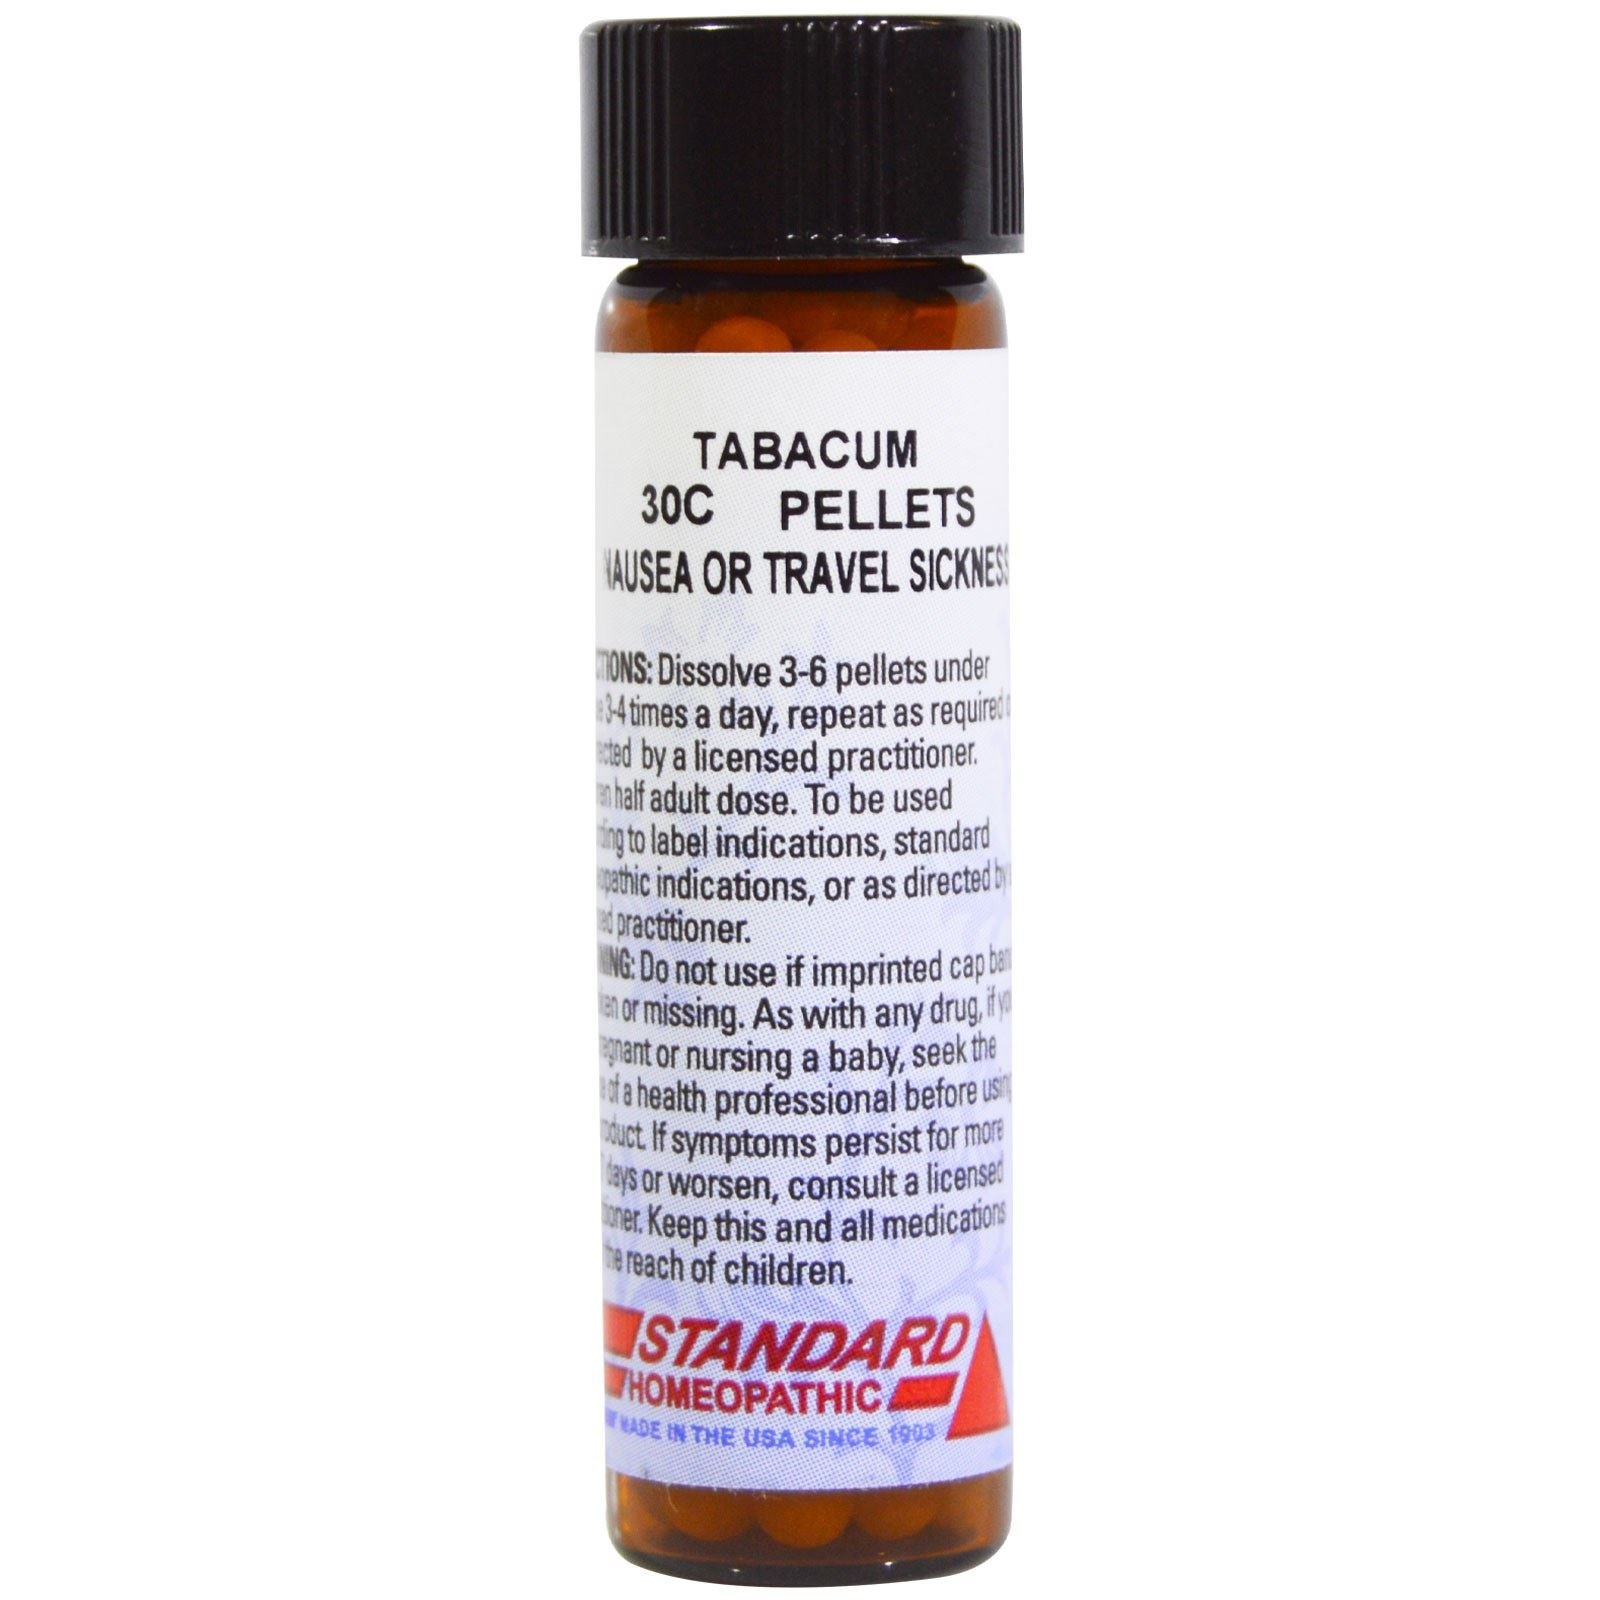 Hyland s Standard Homeopathic Tabacum Nausea or Travel Sickness 30C 160 Pellets